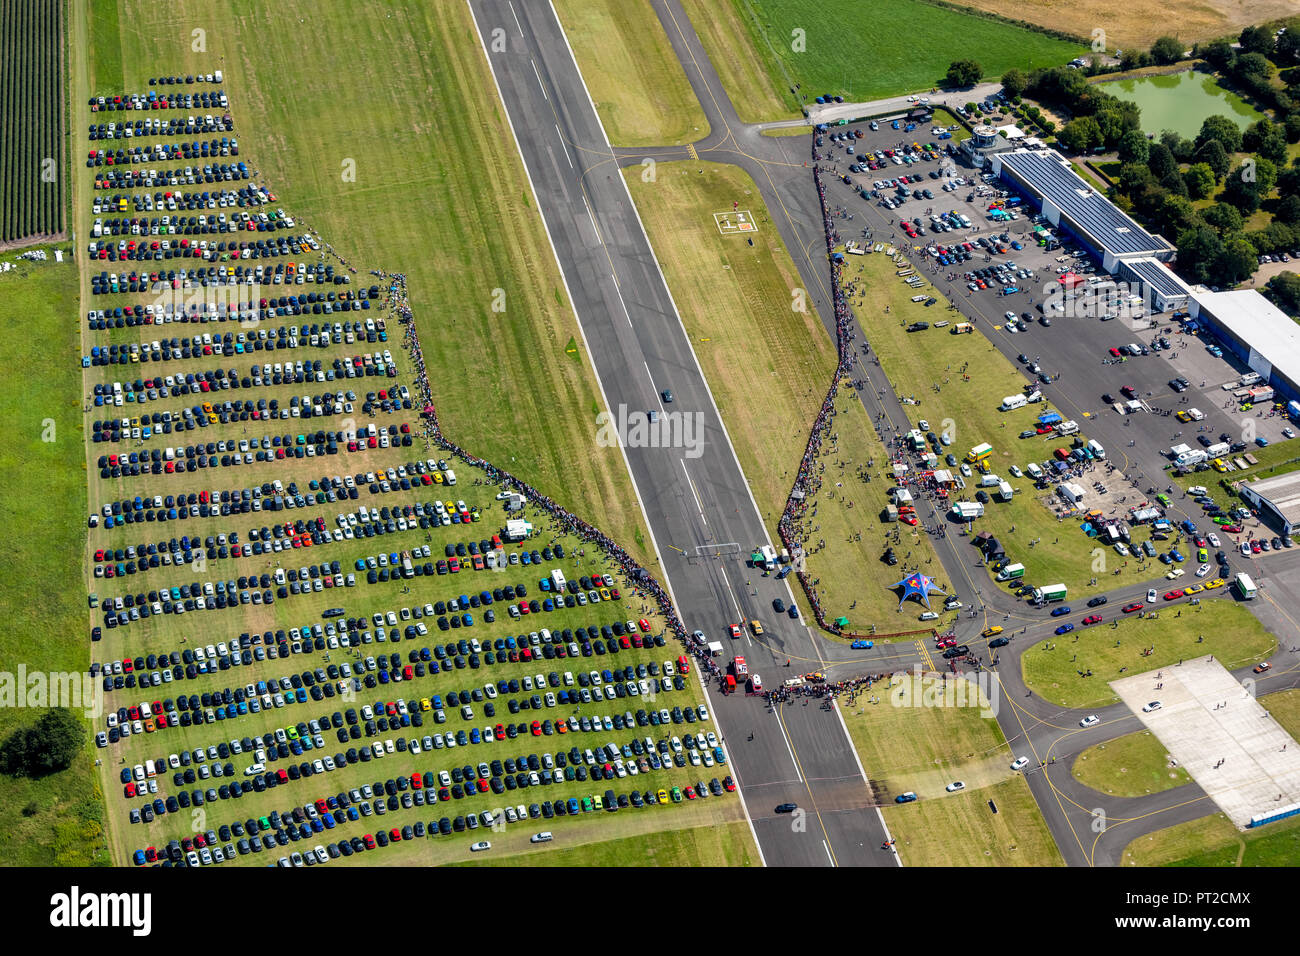 Bottrop, race at airport, airfield Schwarze Heide, 1/4 mile race, acceleration race, car racing on the runway, Ruhr area, North Rhine-Westphalia, Germany - Stock Image